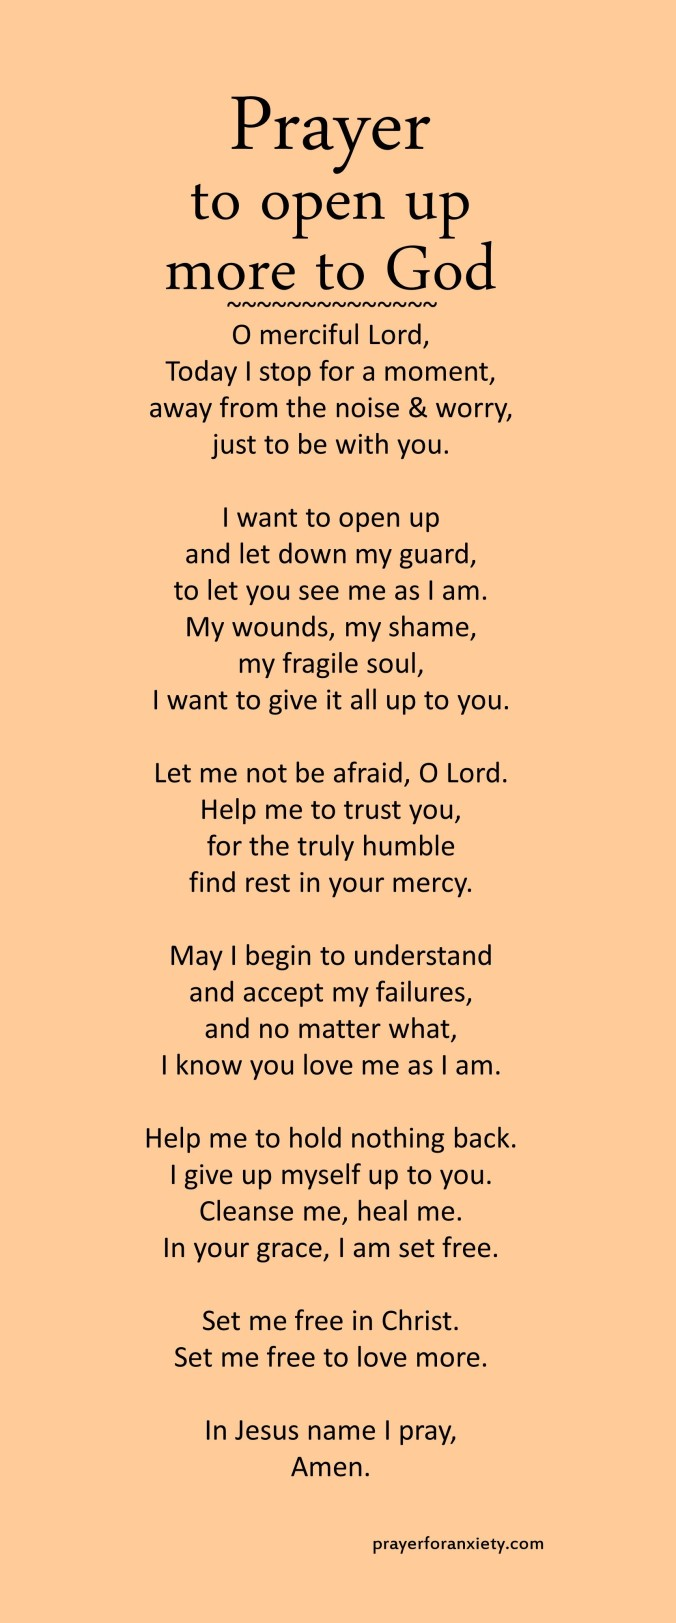 Prayer to open up more to God